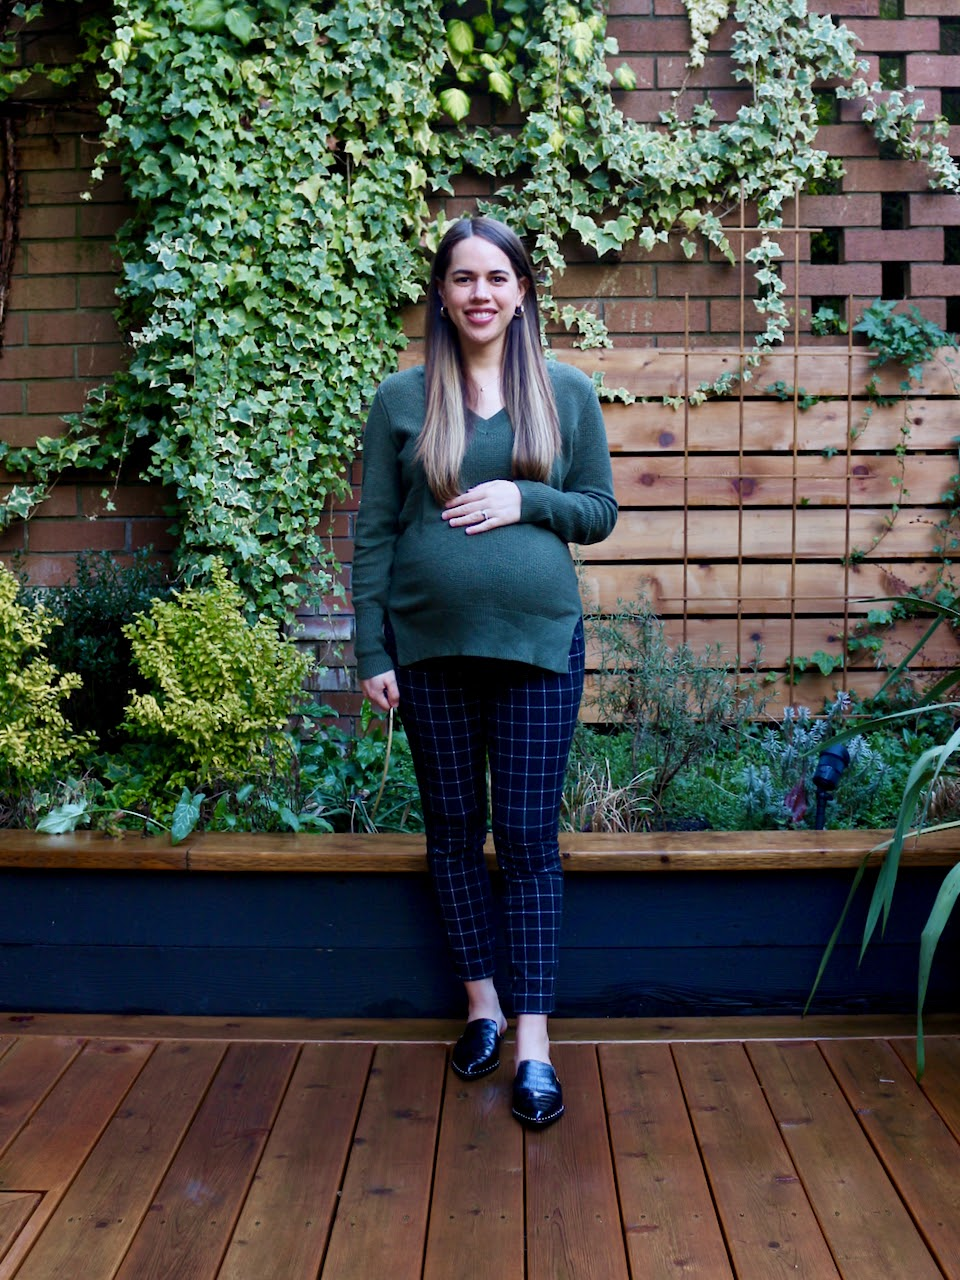 Jules in Flats - Maternity Pixie Ankle Pants with V-Neck Sweater (Business Casual Workwear on a Budget)